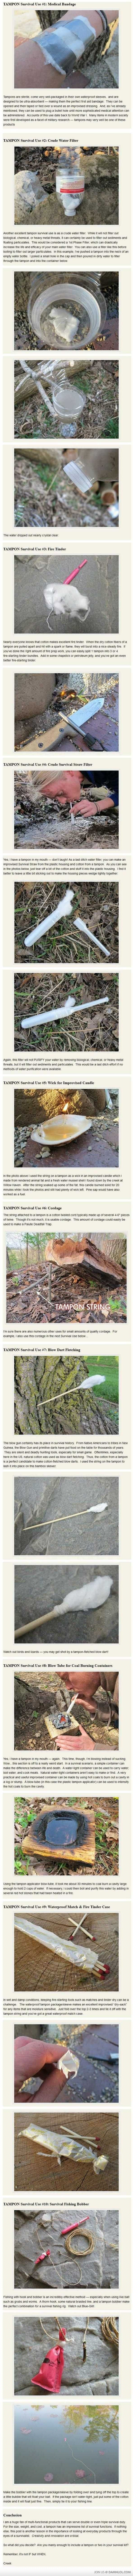 hahahaha Survival Uses Of A Tampon